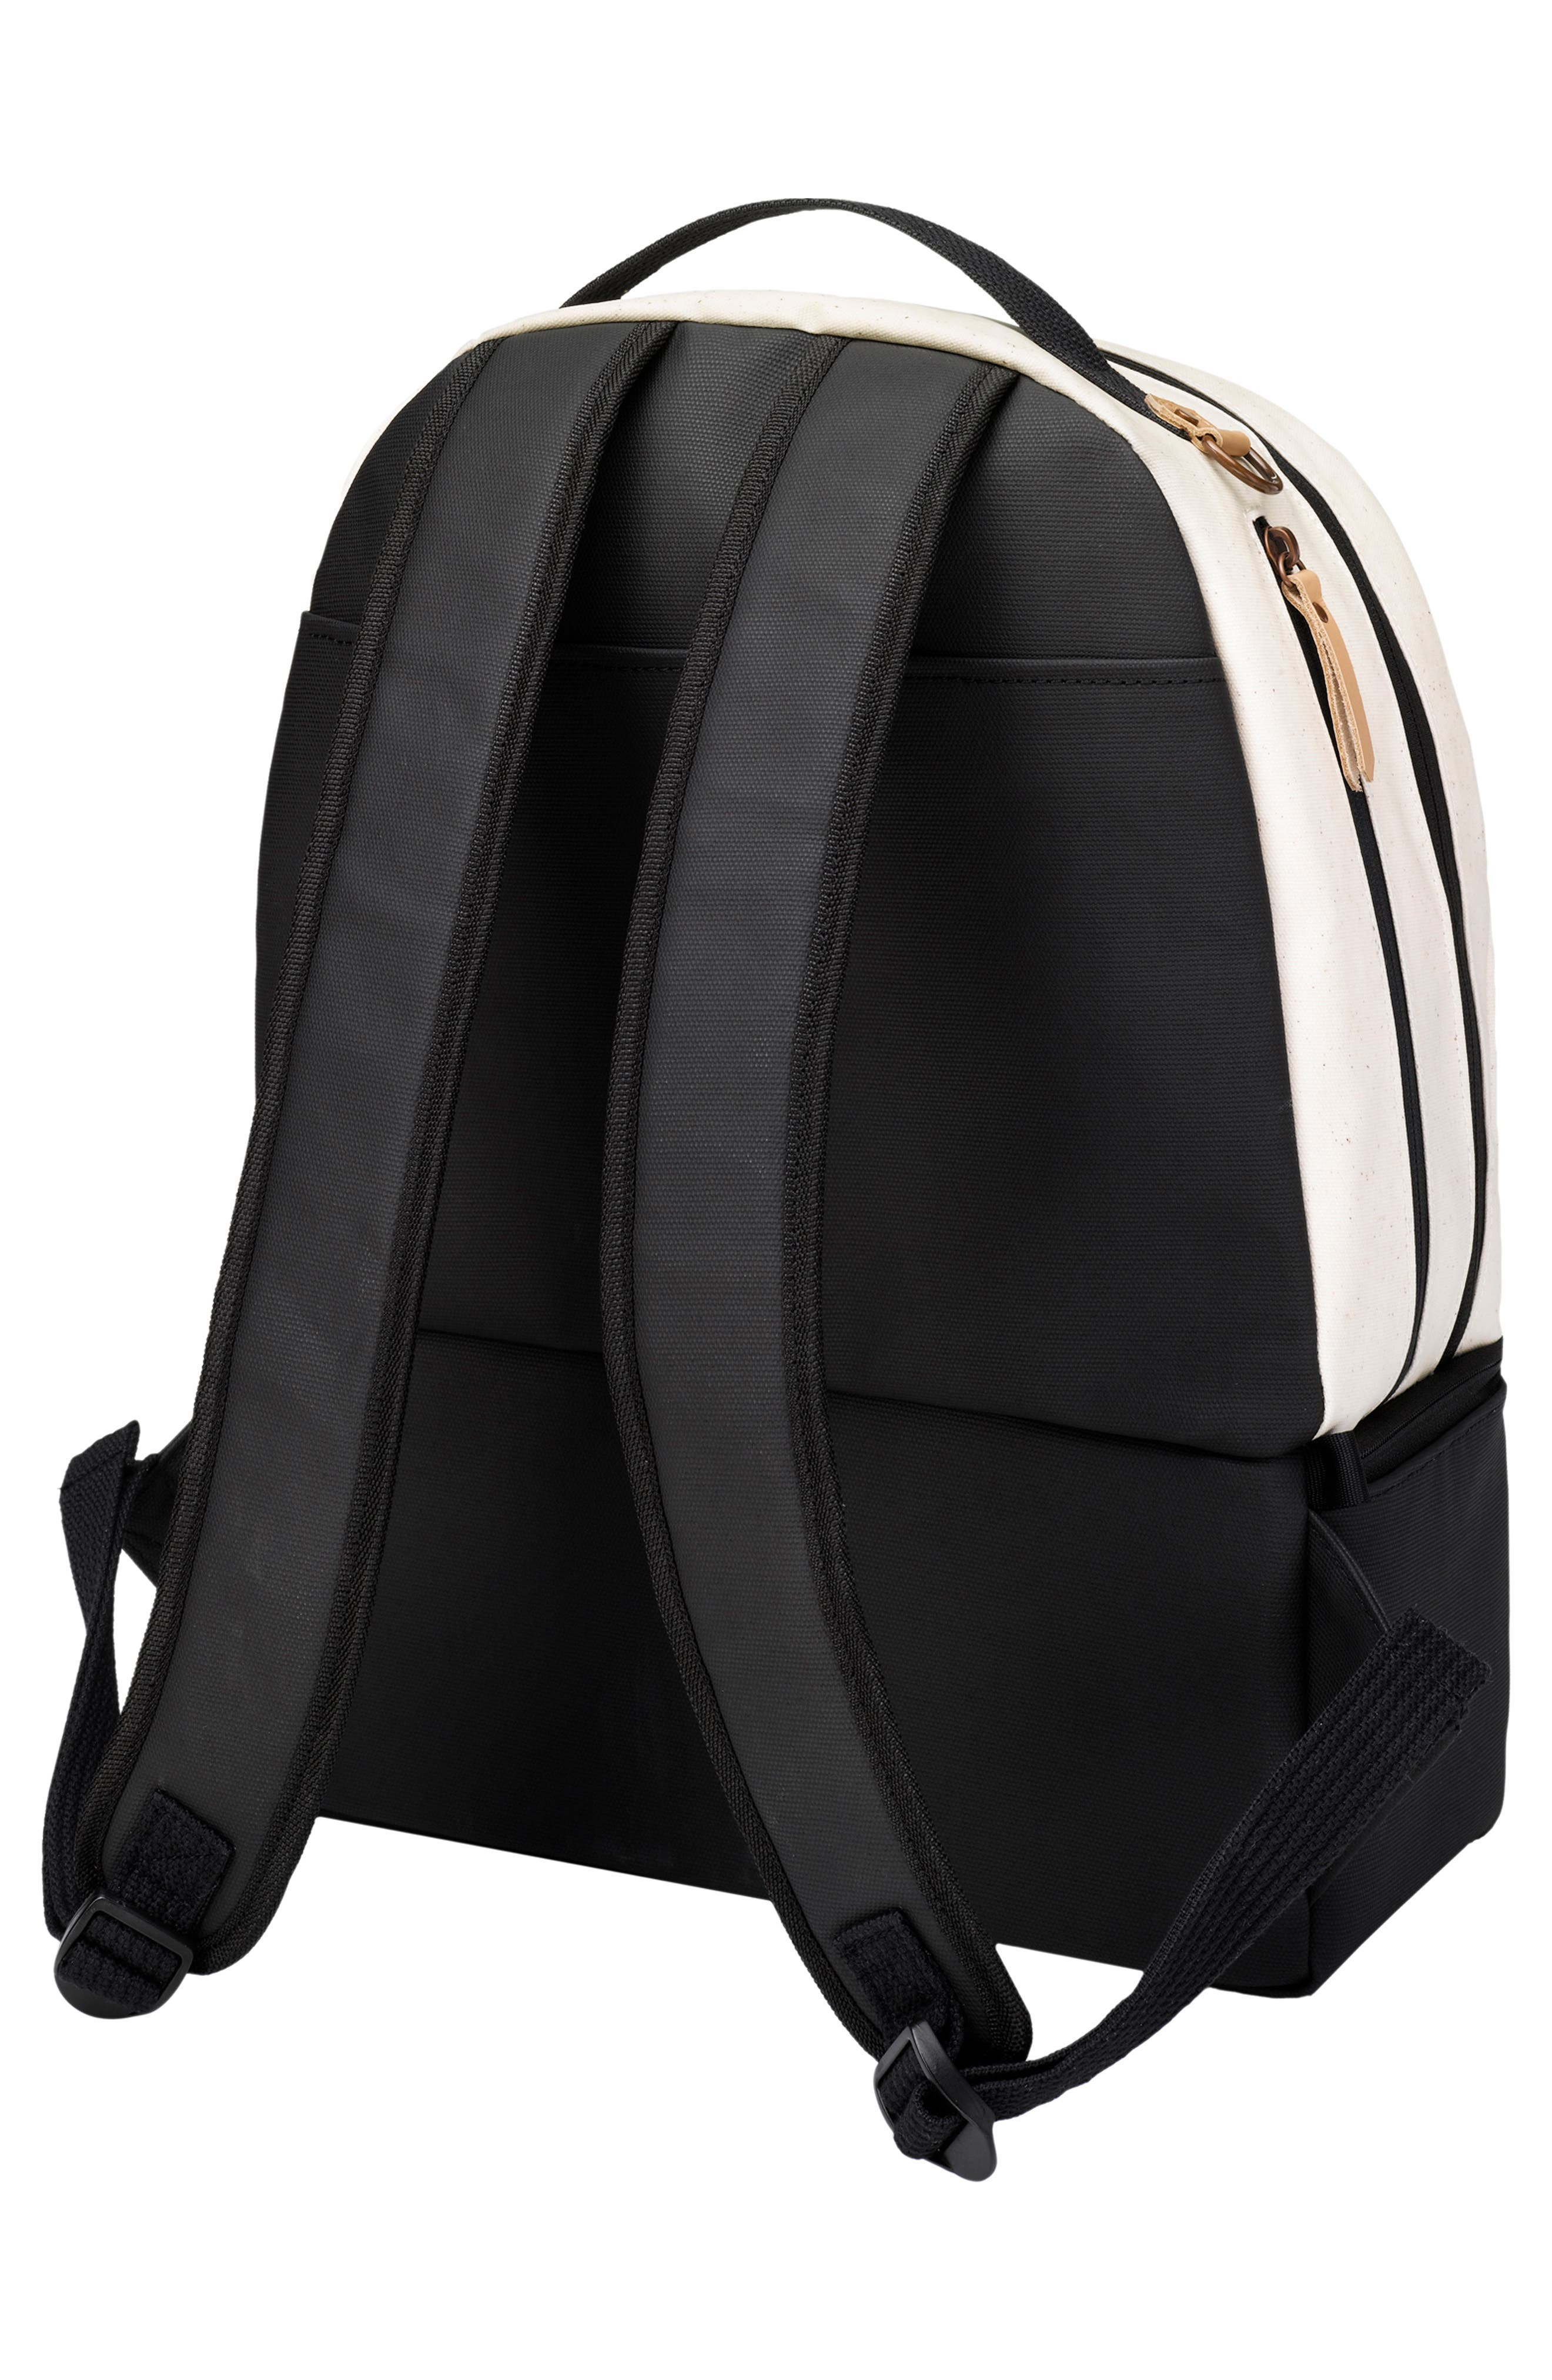 Axis Insulated Backpack,                             Alternate thumbnail 2, color,                             BIRCH/ BLACK